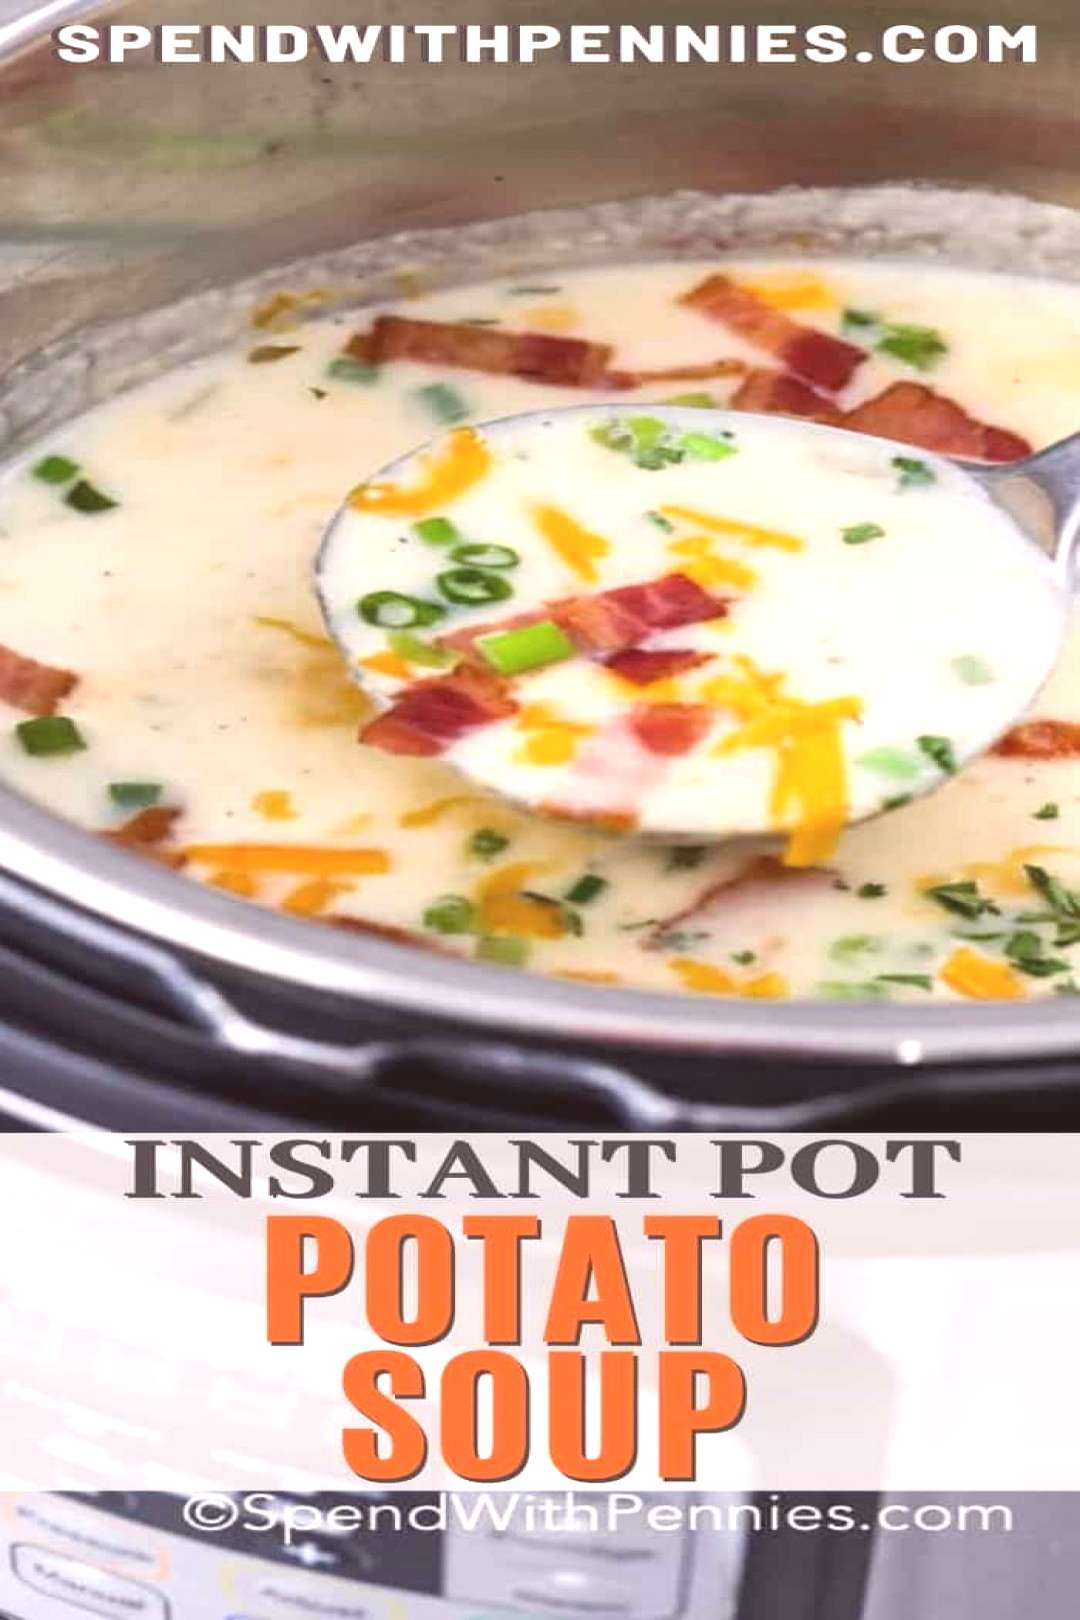 Instant Pot Potato Soup Super Easy! - Spend With Pennies - This homemade potato soup is made in